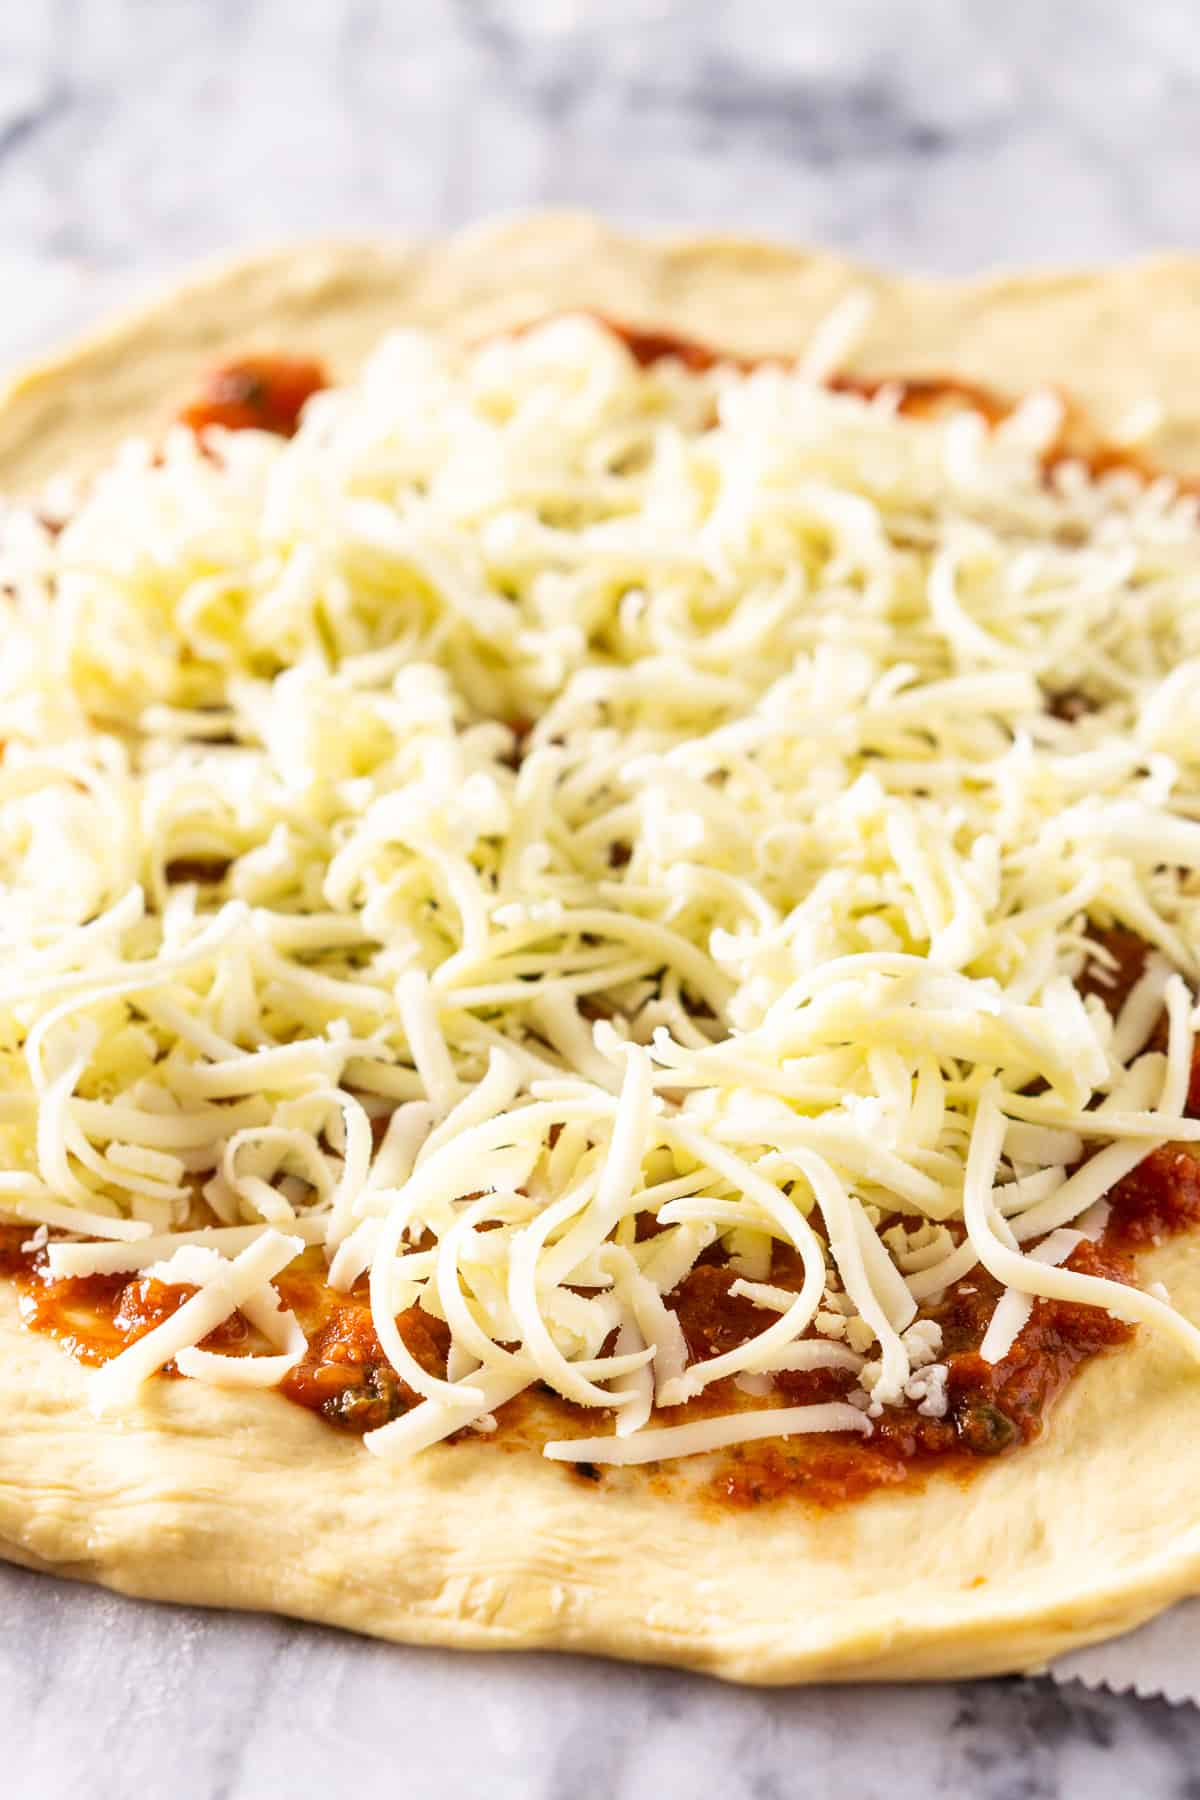 The pizza dough on a pastry board with sauce and cheese.